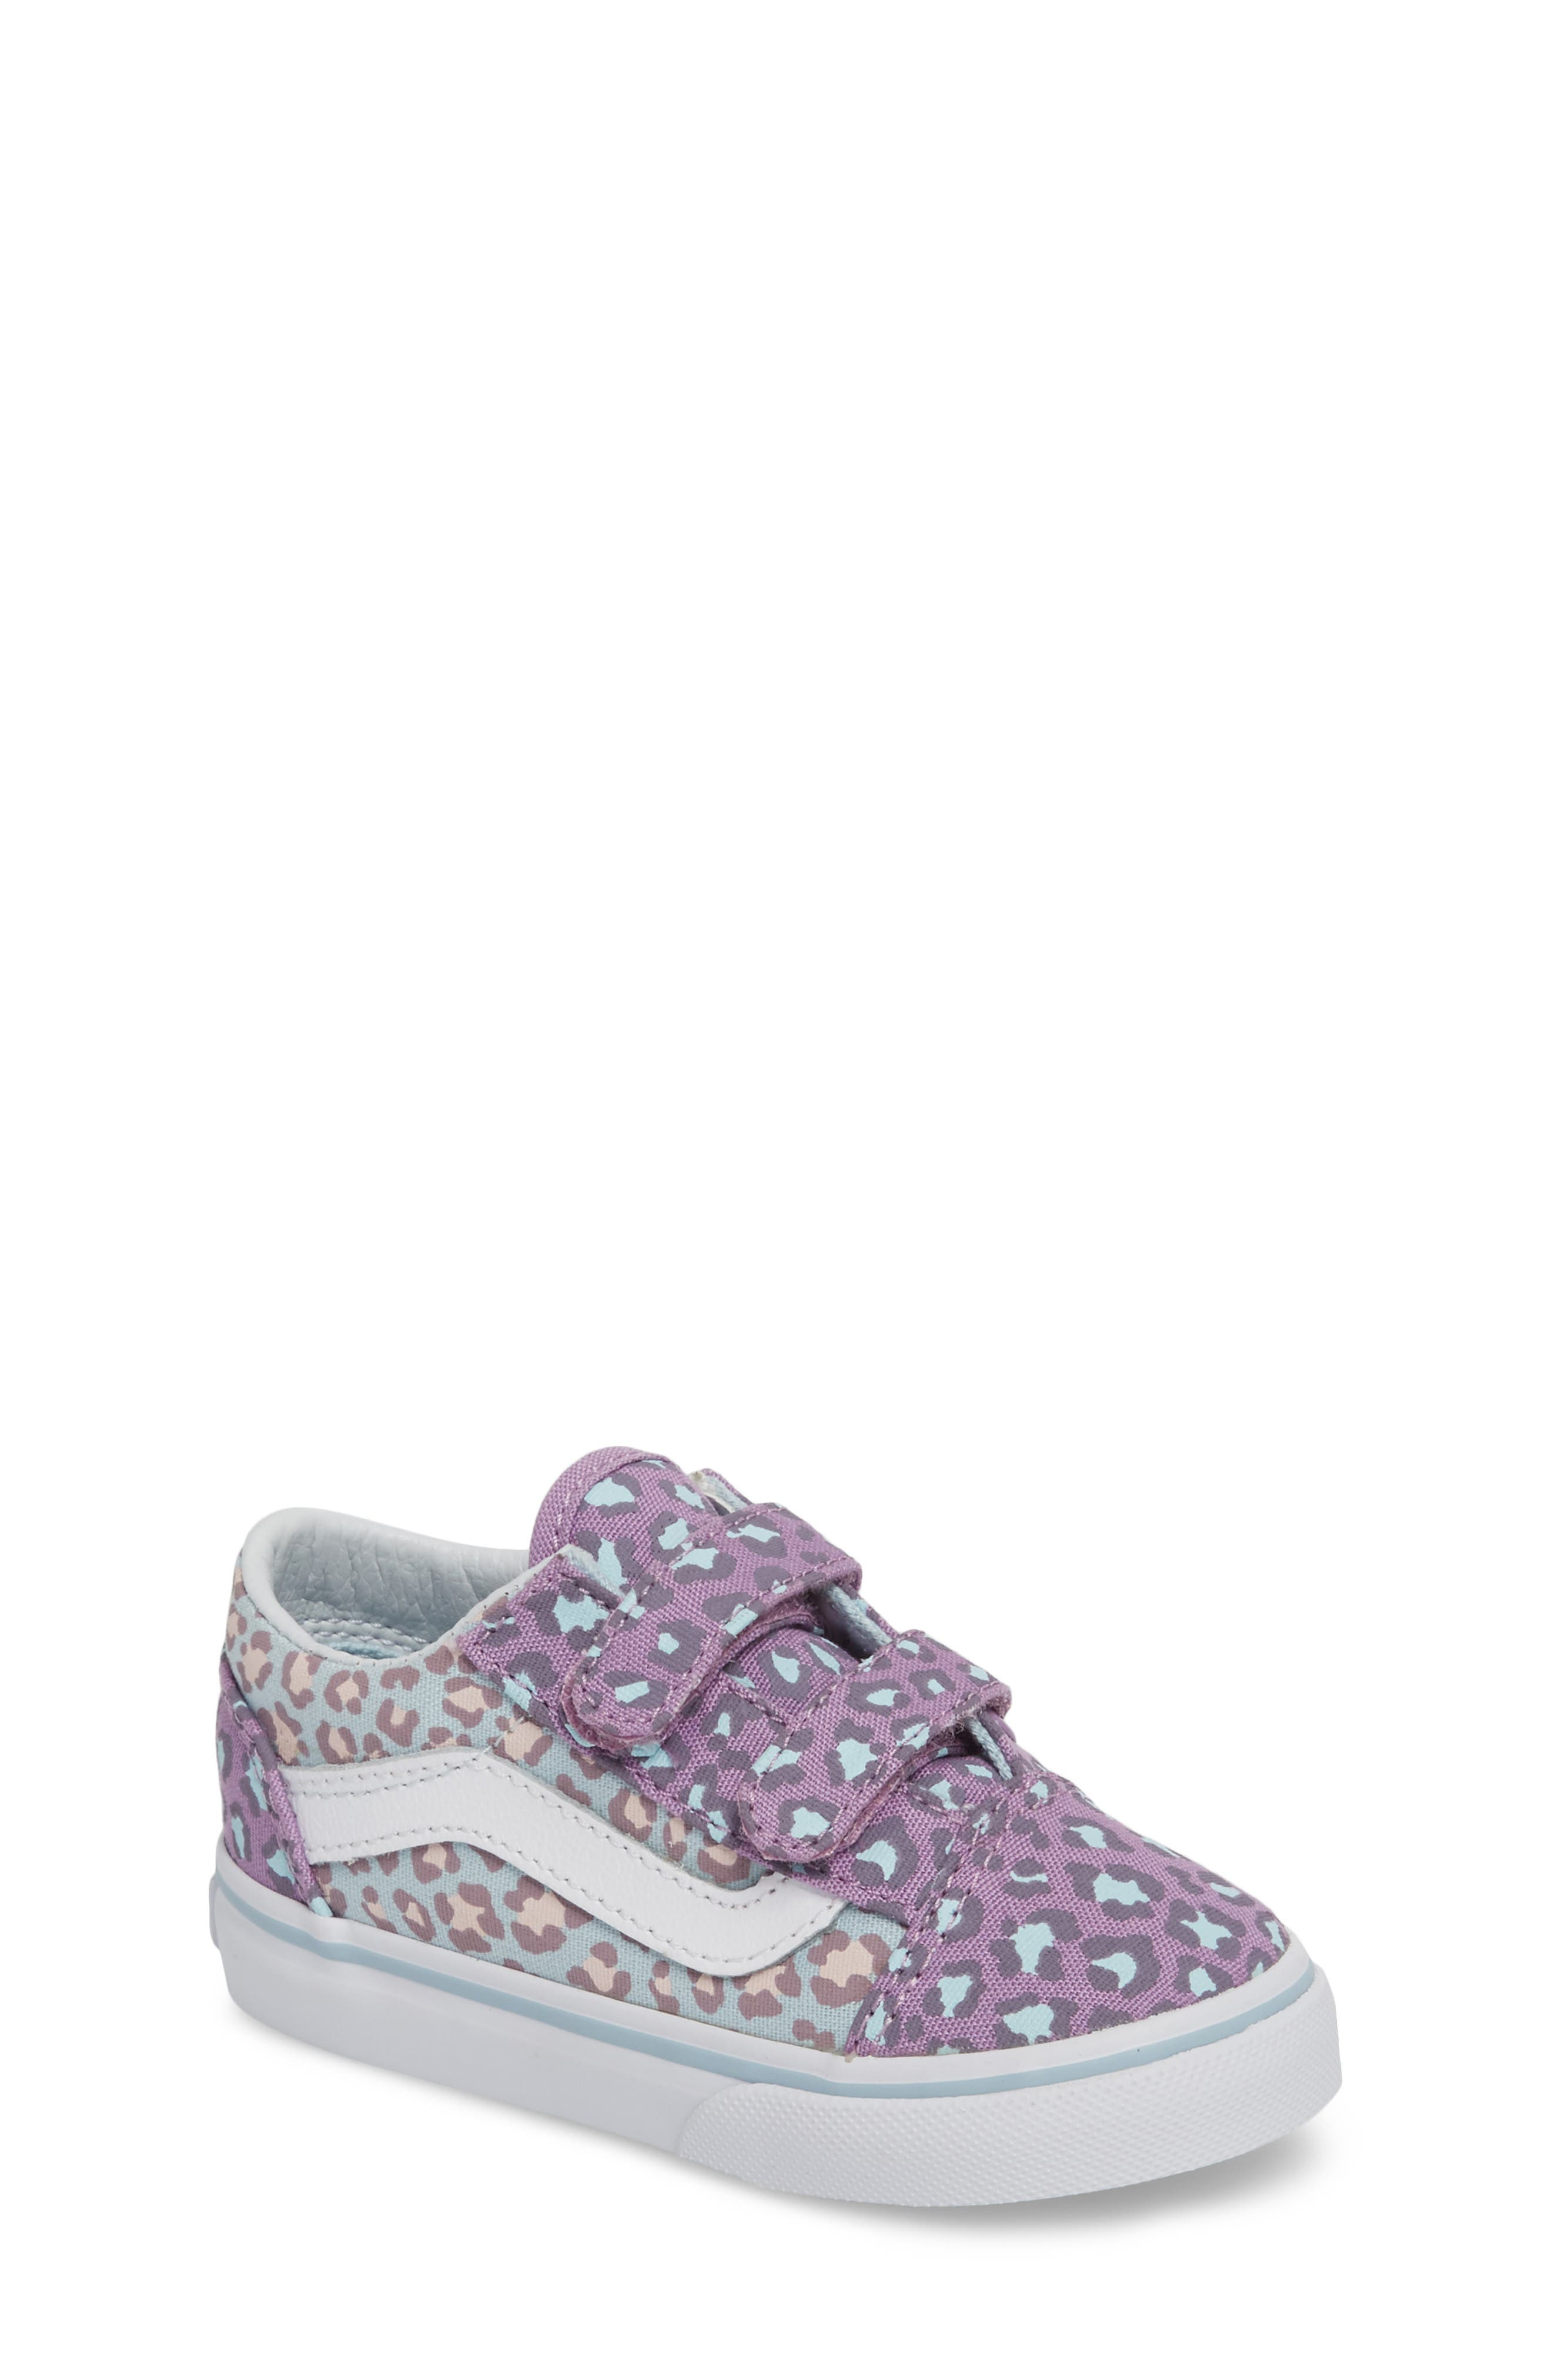 'Old Skool V' Sneaker,                             Main thumbnail 1, color,                             Blue/ Orchid Leopard